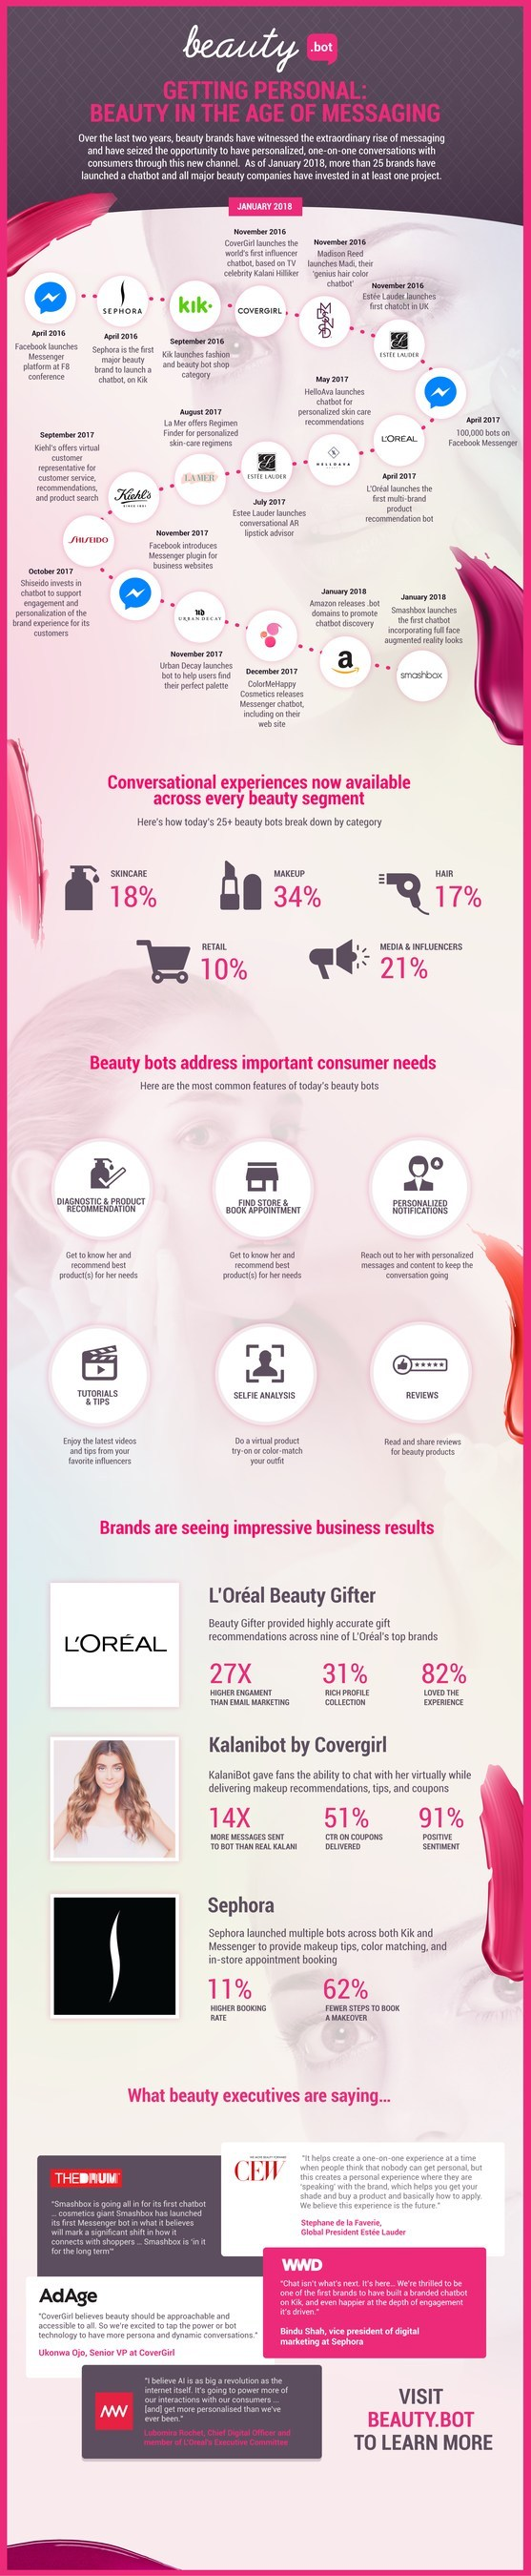 """The beauty industry has readily adopted the conversational marketing technology provided by bots. These industry developments are summarized in an infographic called """"Getting Personal: Beauty in the Age of Messaging"""" available at https://www.beauty.bot/infographic/. (CNW Group/Automat Technologies, Inc)"""